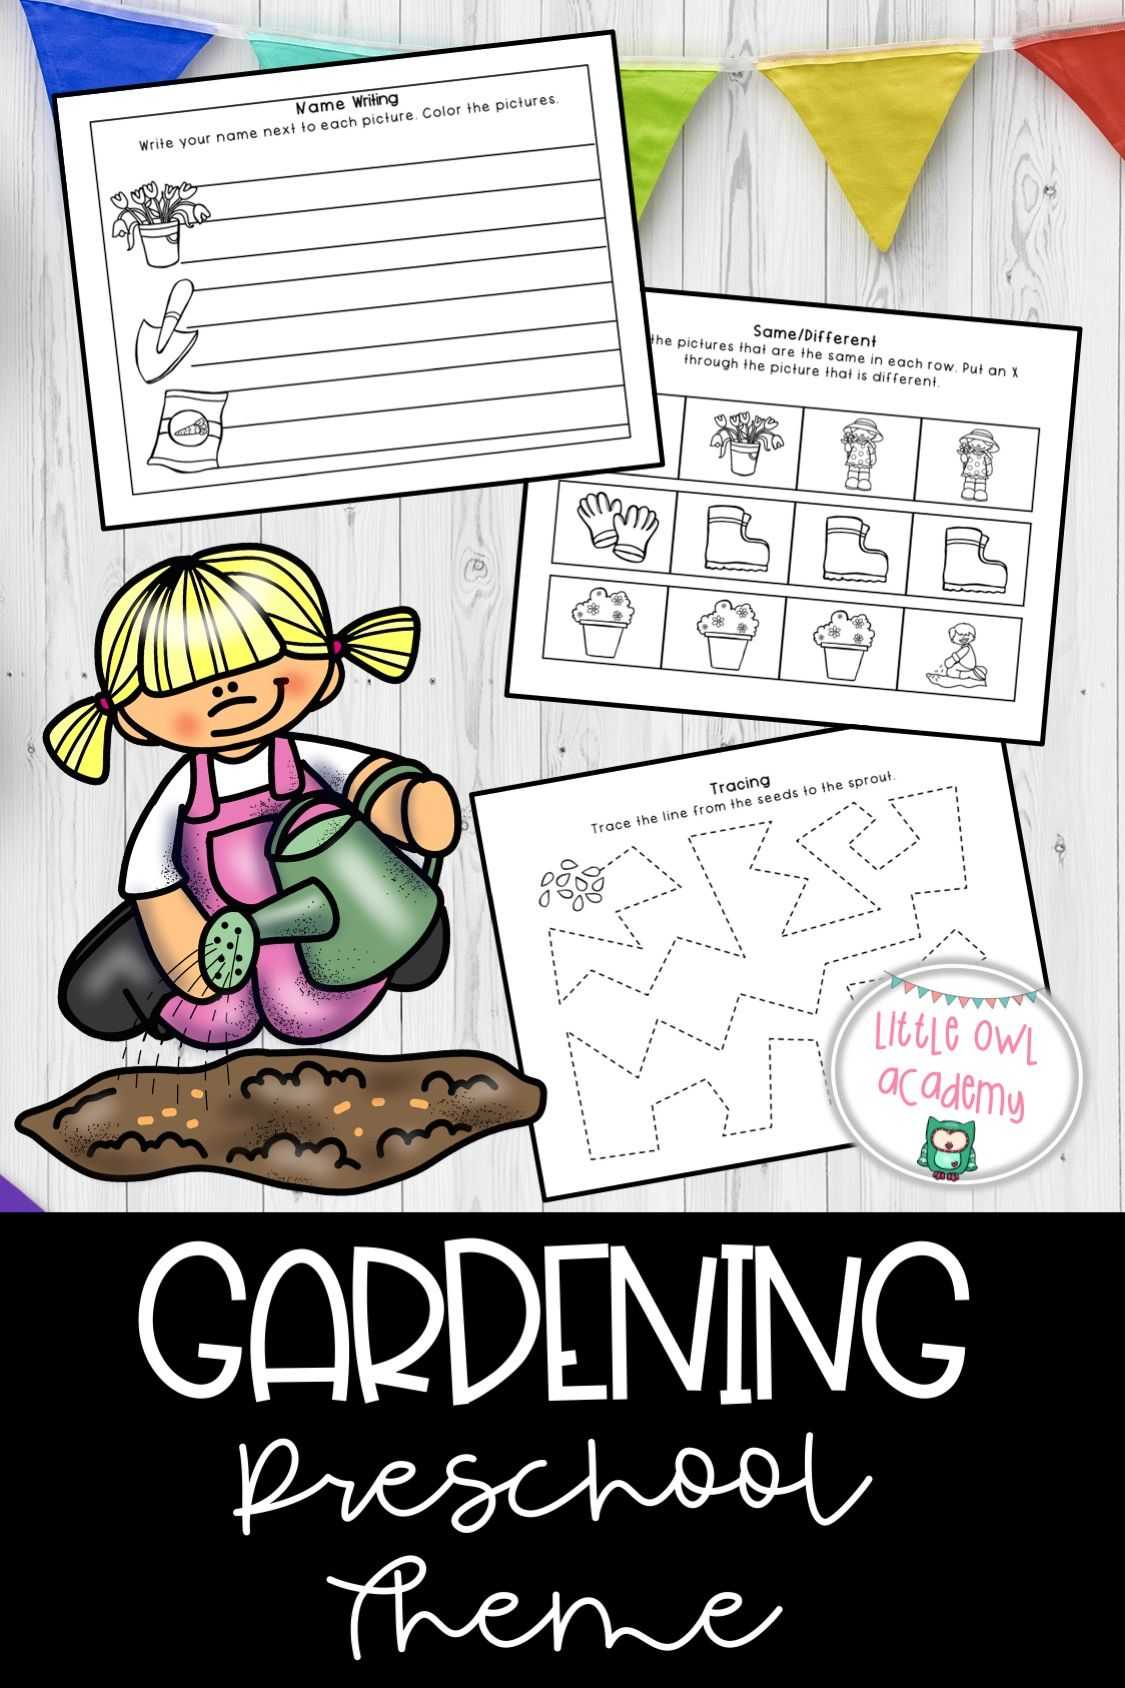 Gardening Preschool Theme In